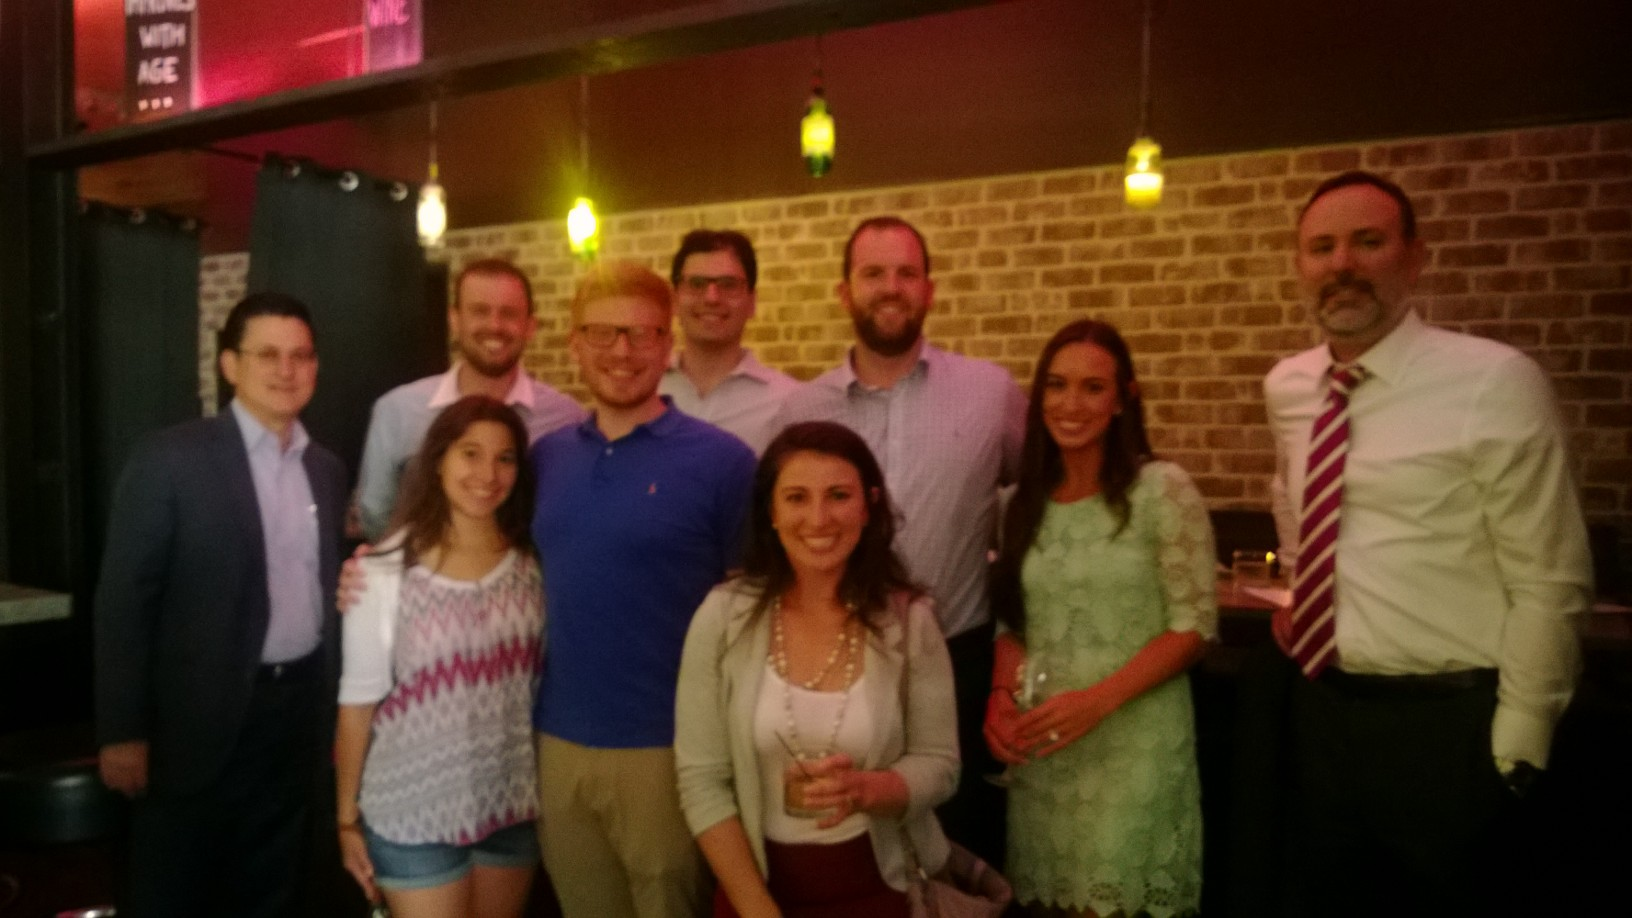 A great night of delicious wine and great conversation at our Wine Mixer at Vinotecca in Birmingham.